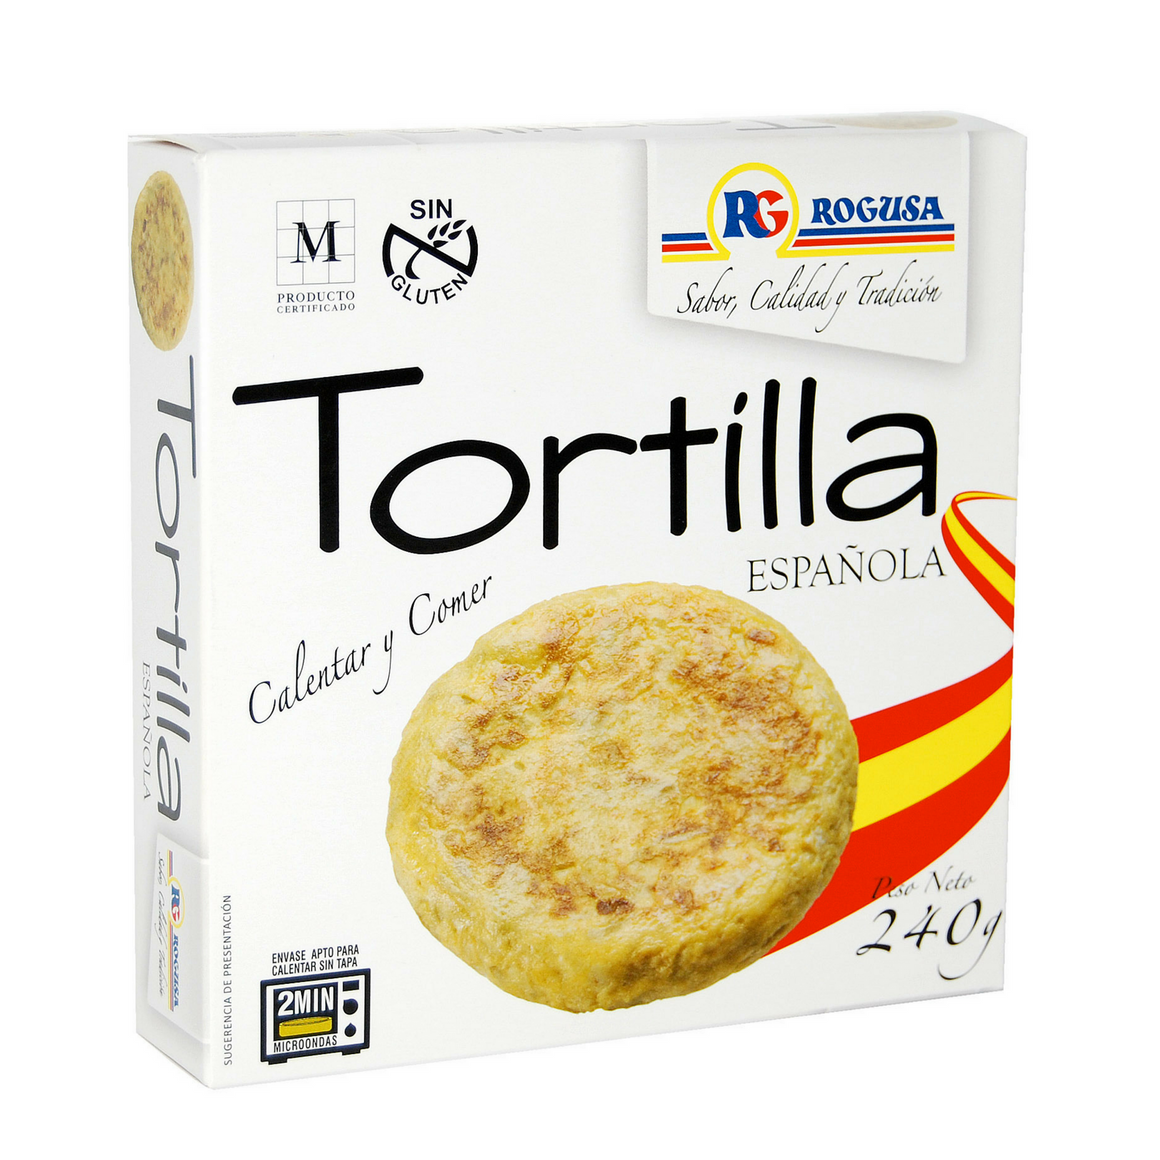 Tortilla Española Rogusa - Sp4in.com Spanish Food and Products Marketplace